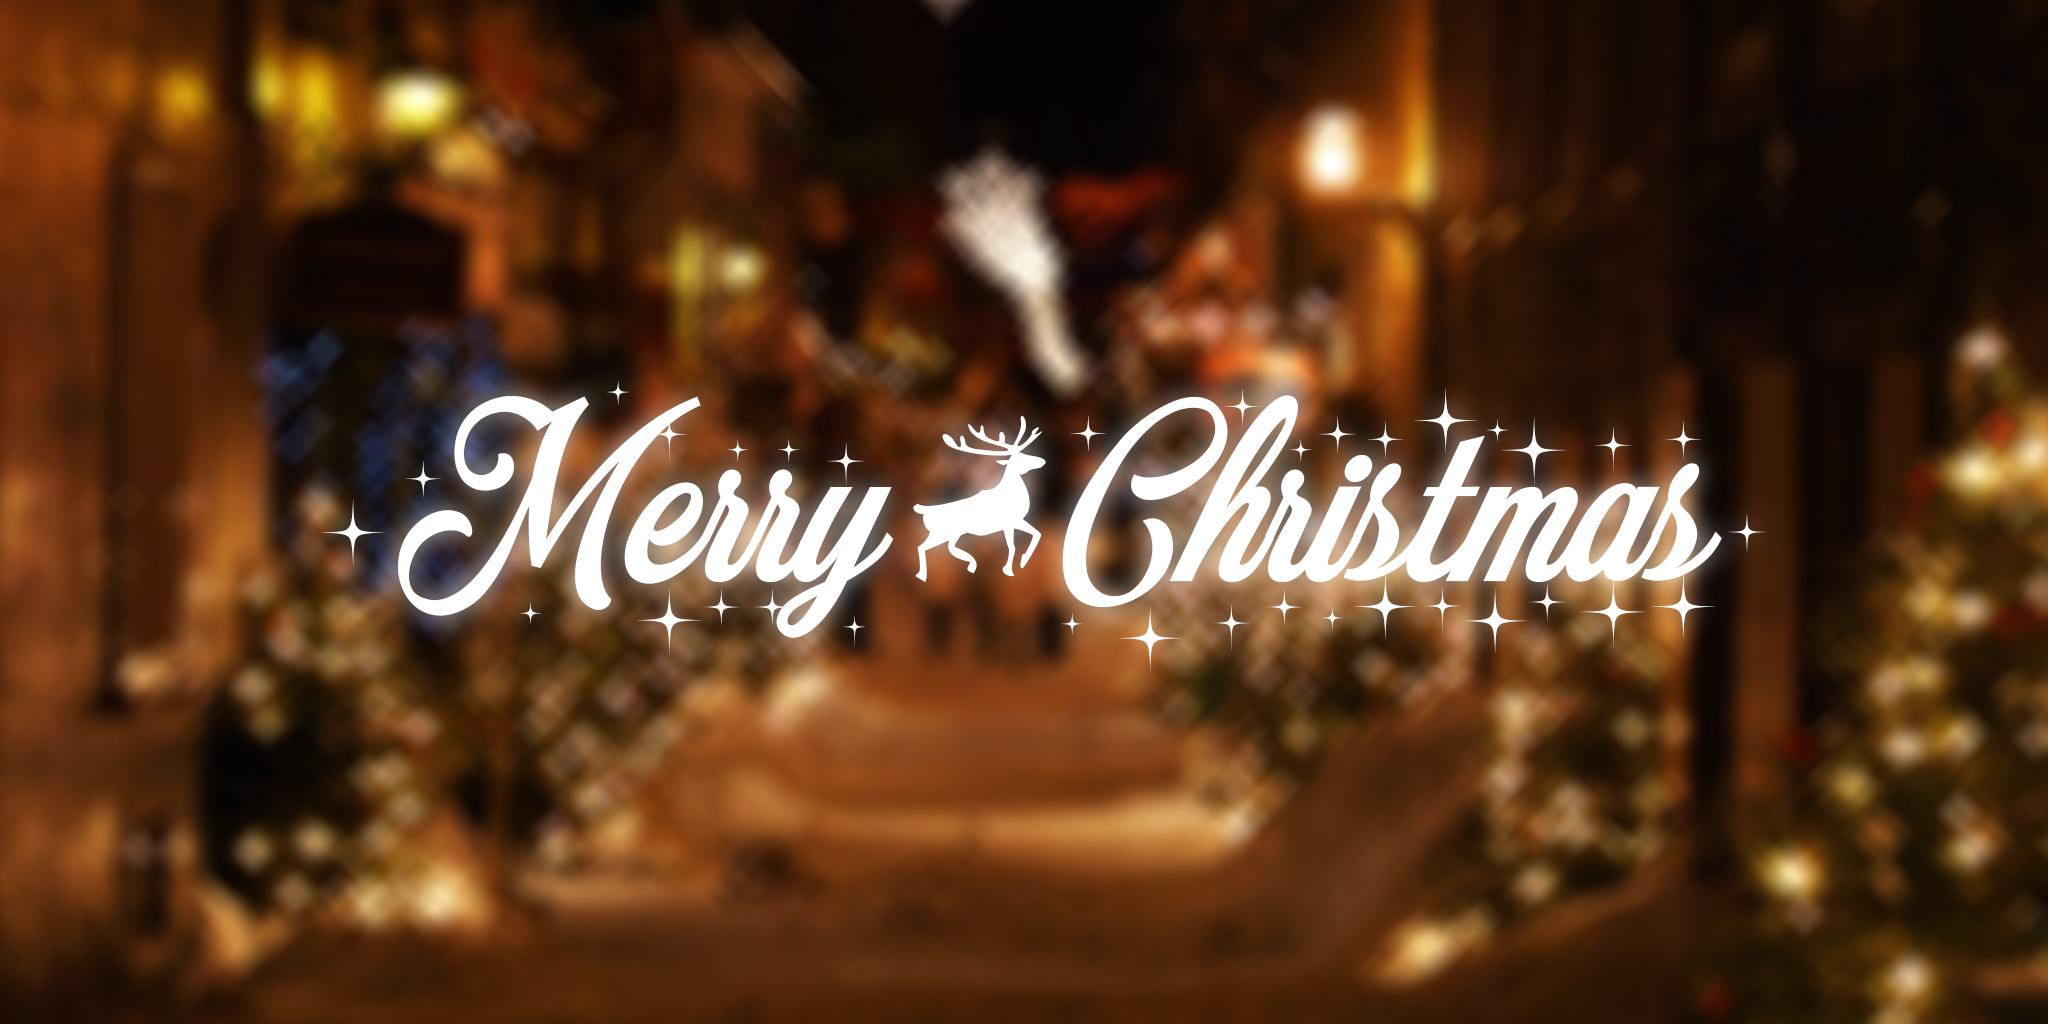 Merry Christmas Images Free.Merry Christmas Font Family 2 Styles By Mans Greback